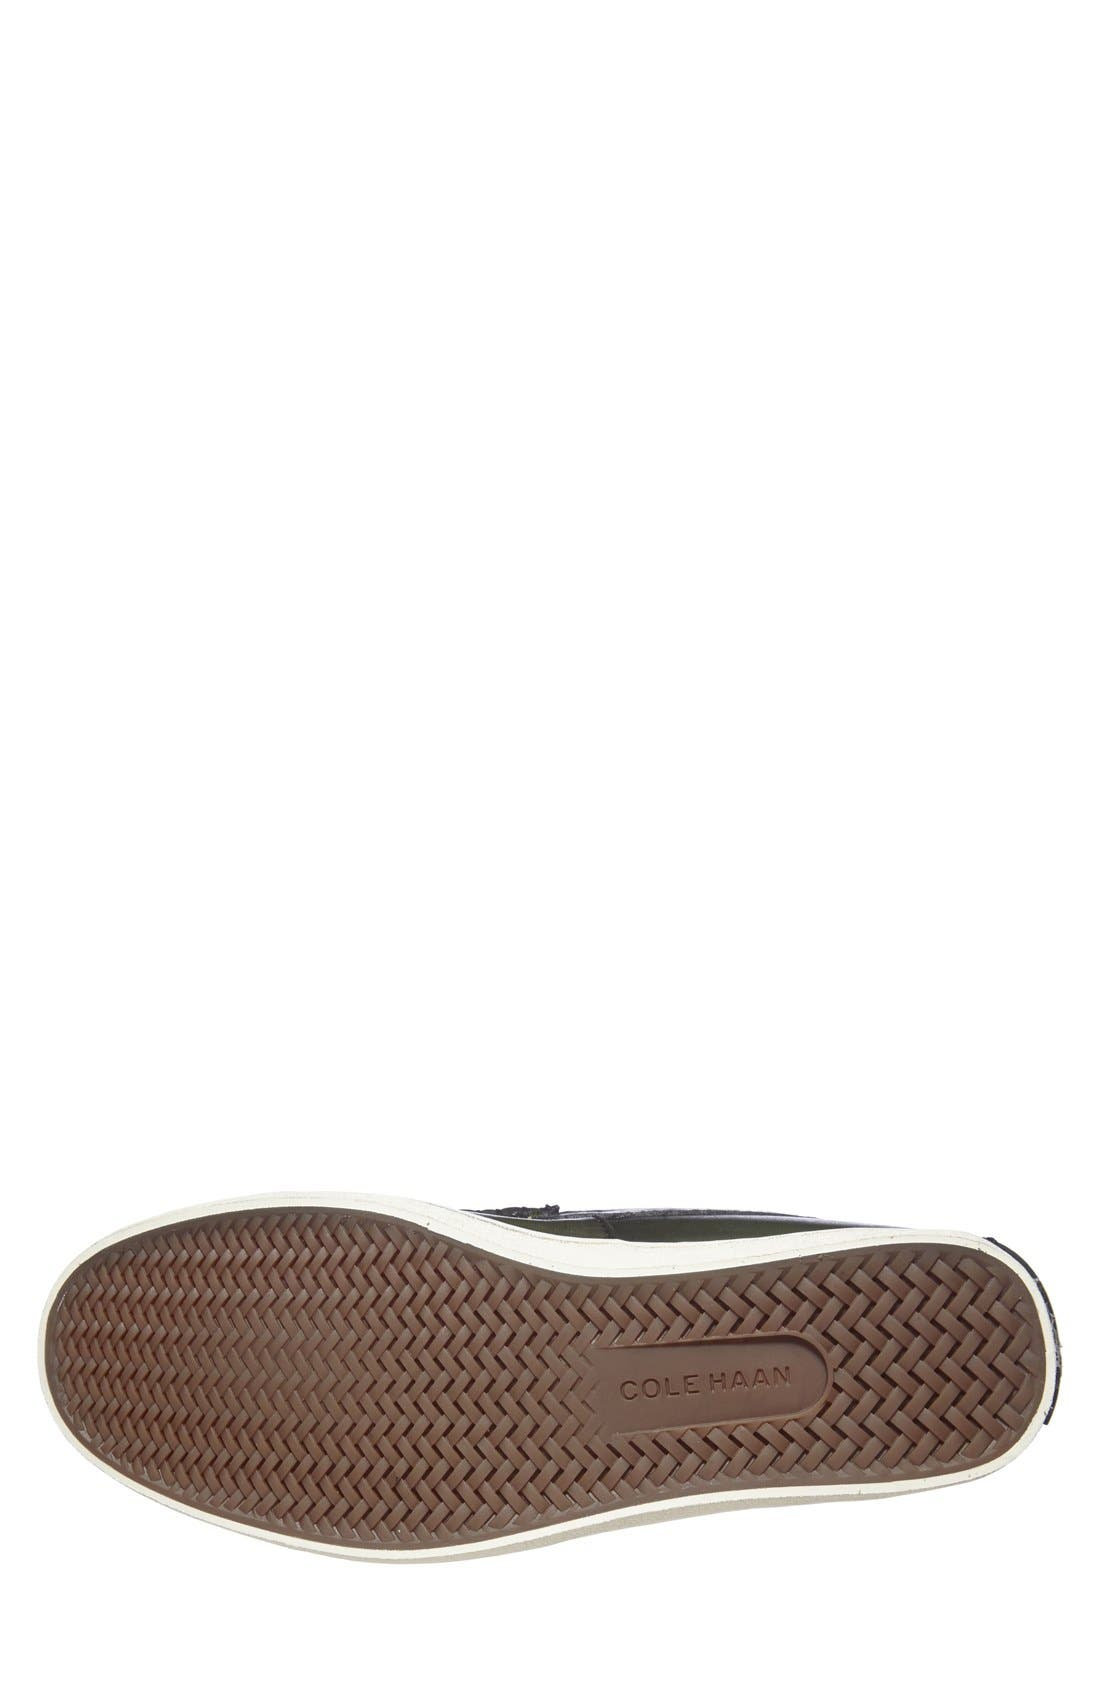 'Pinch' Penny Loafer,                             Alternate thumbnail 2, color,                             305